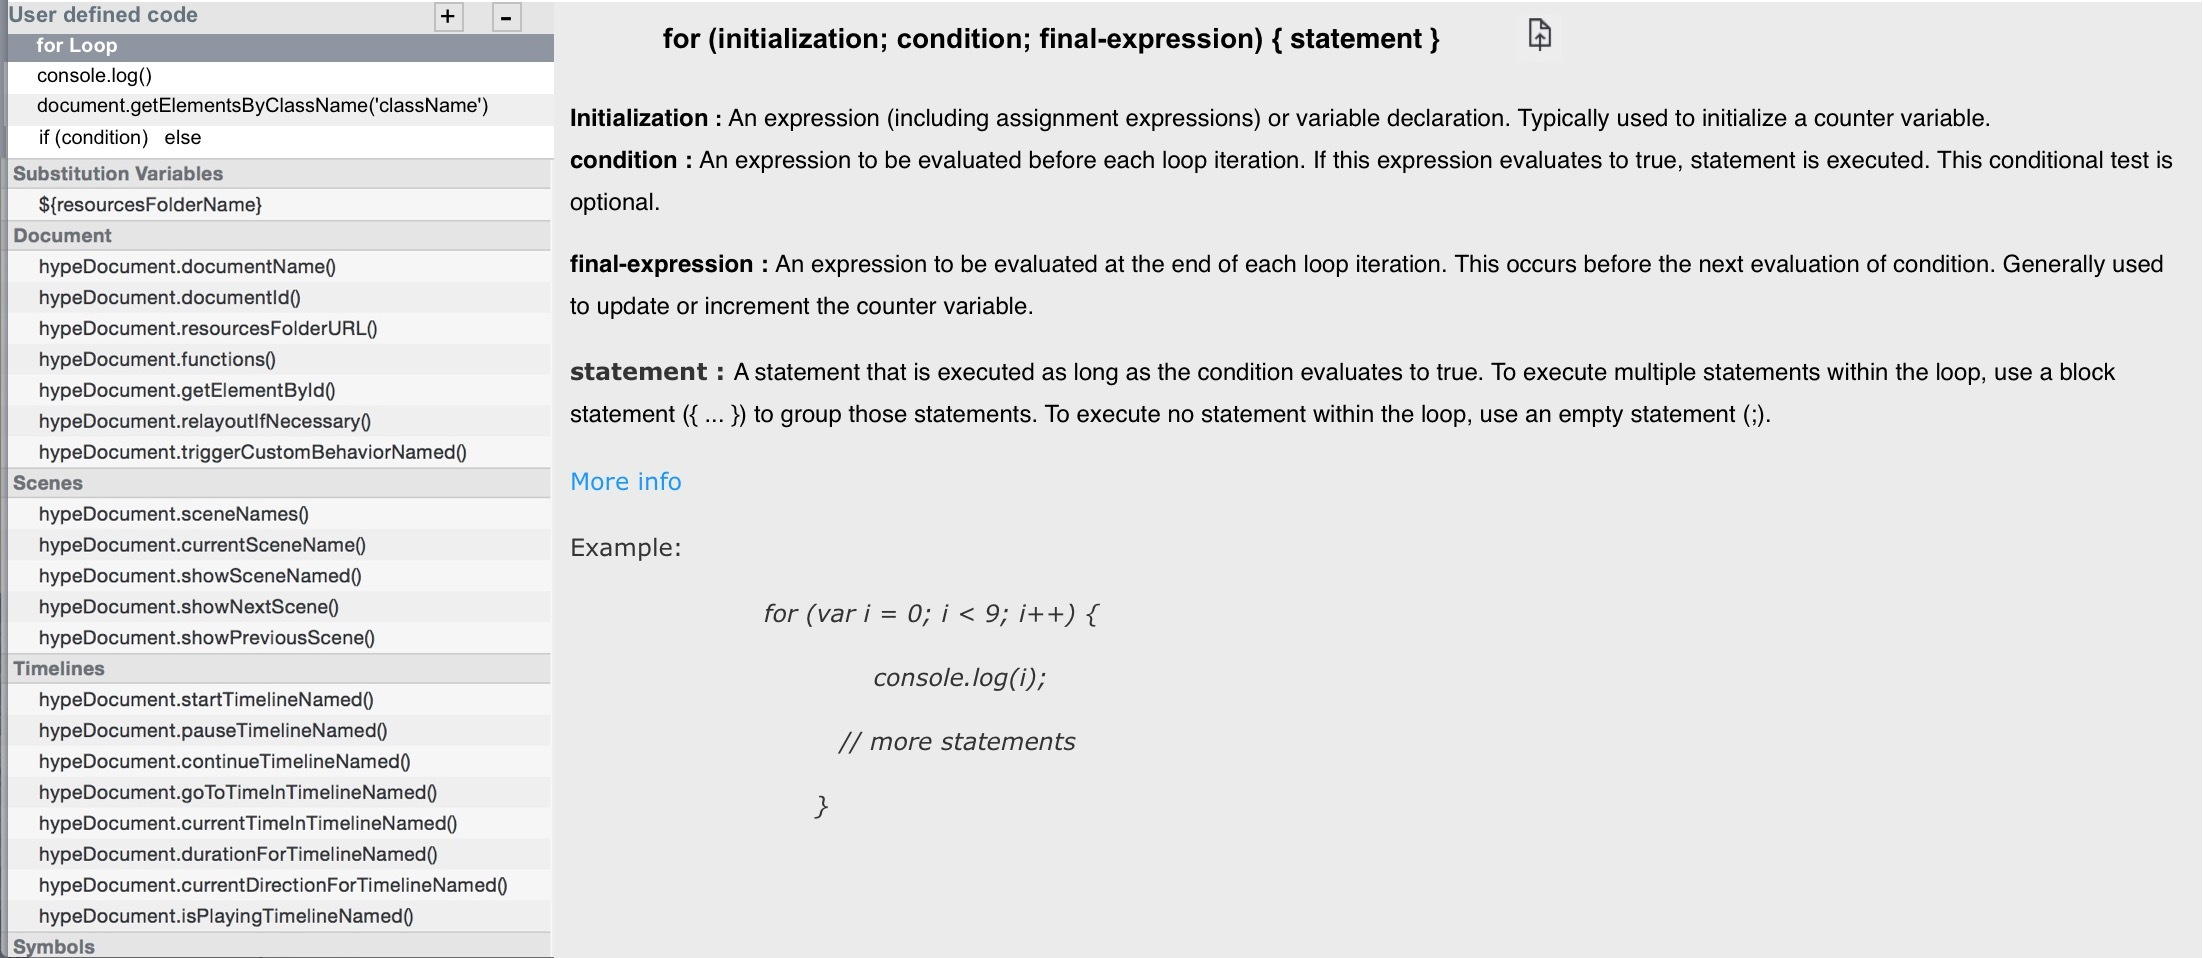 User defined code in JavaScript Documentation Viewer - Feature